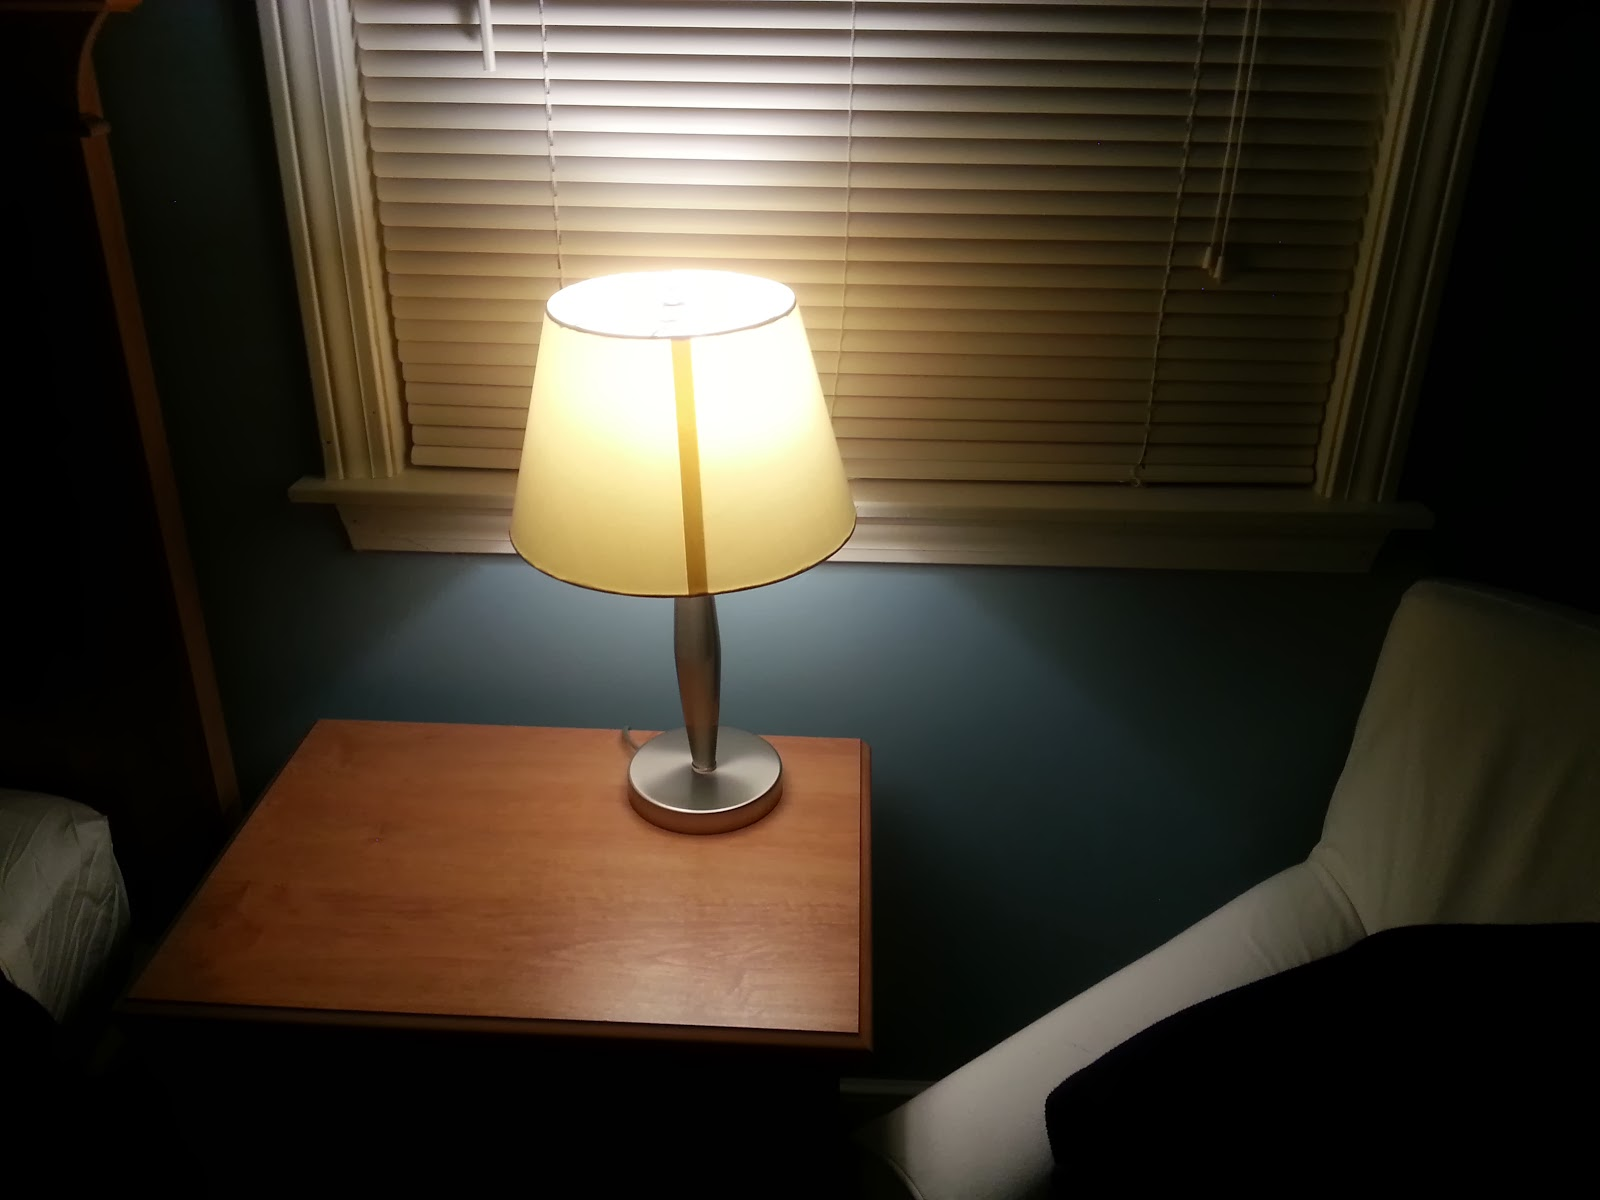 Bedroom Lamp with GE Reveal LED Bulb